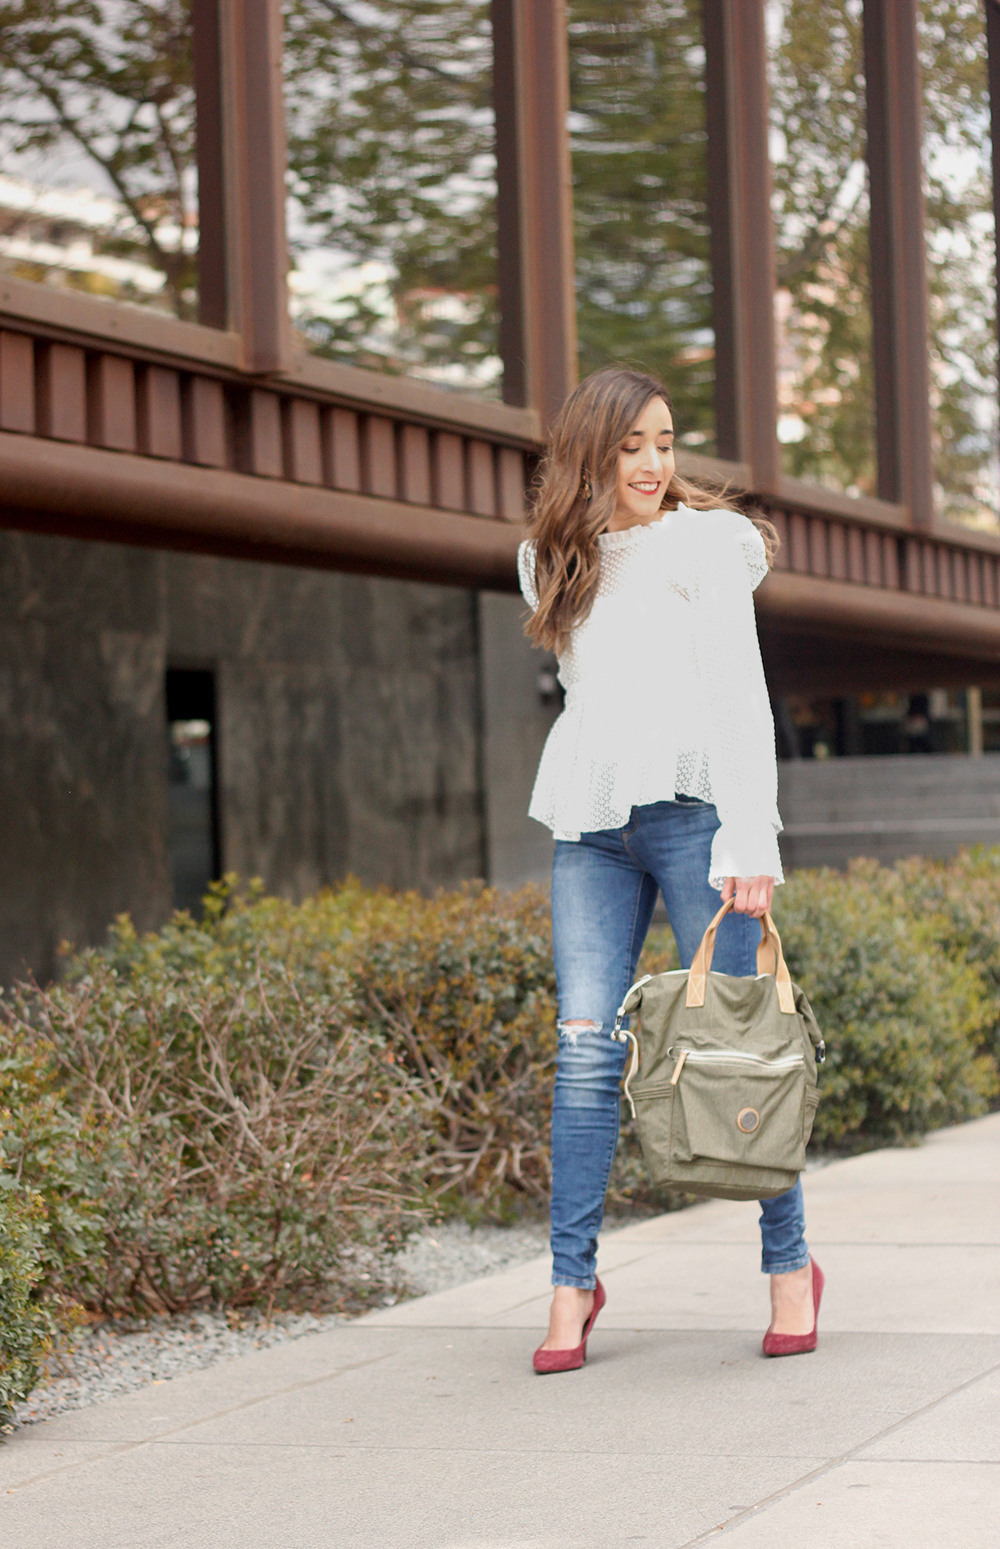 kipling backpack transformation collection khaki white lace blouse casual street style casual outfit 20198